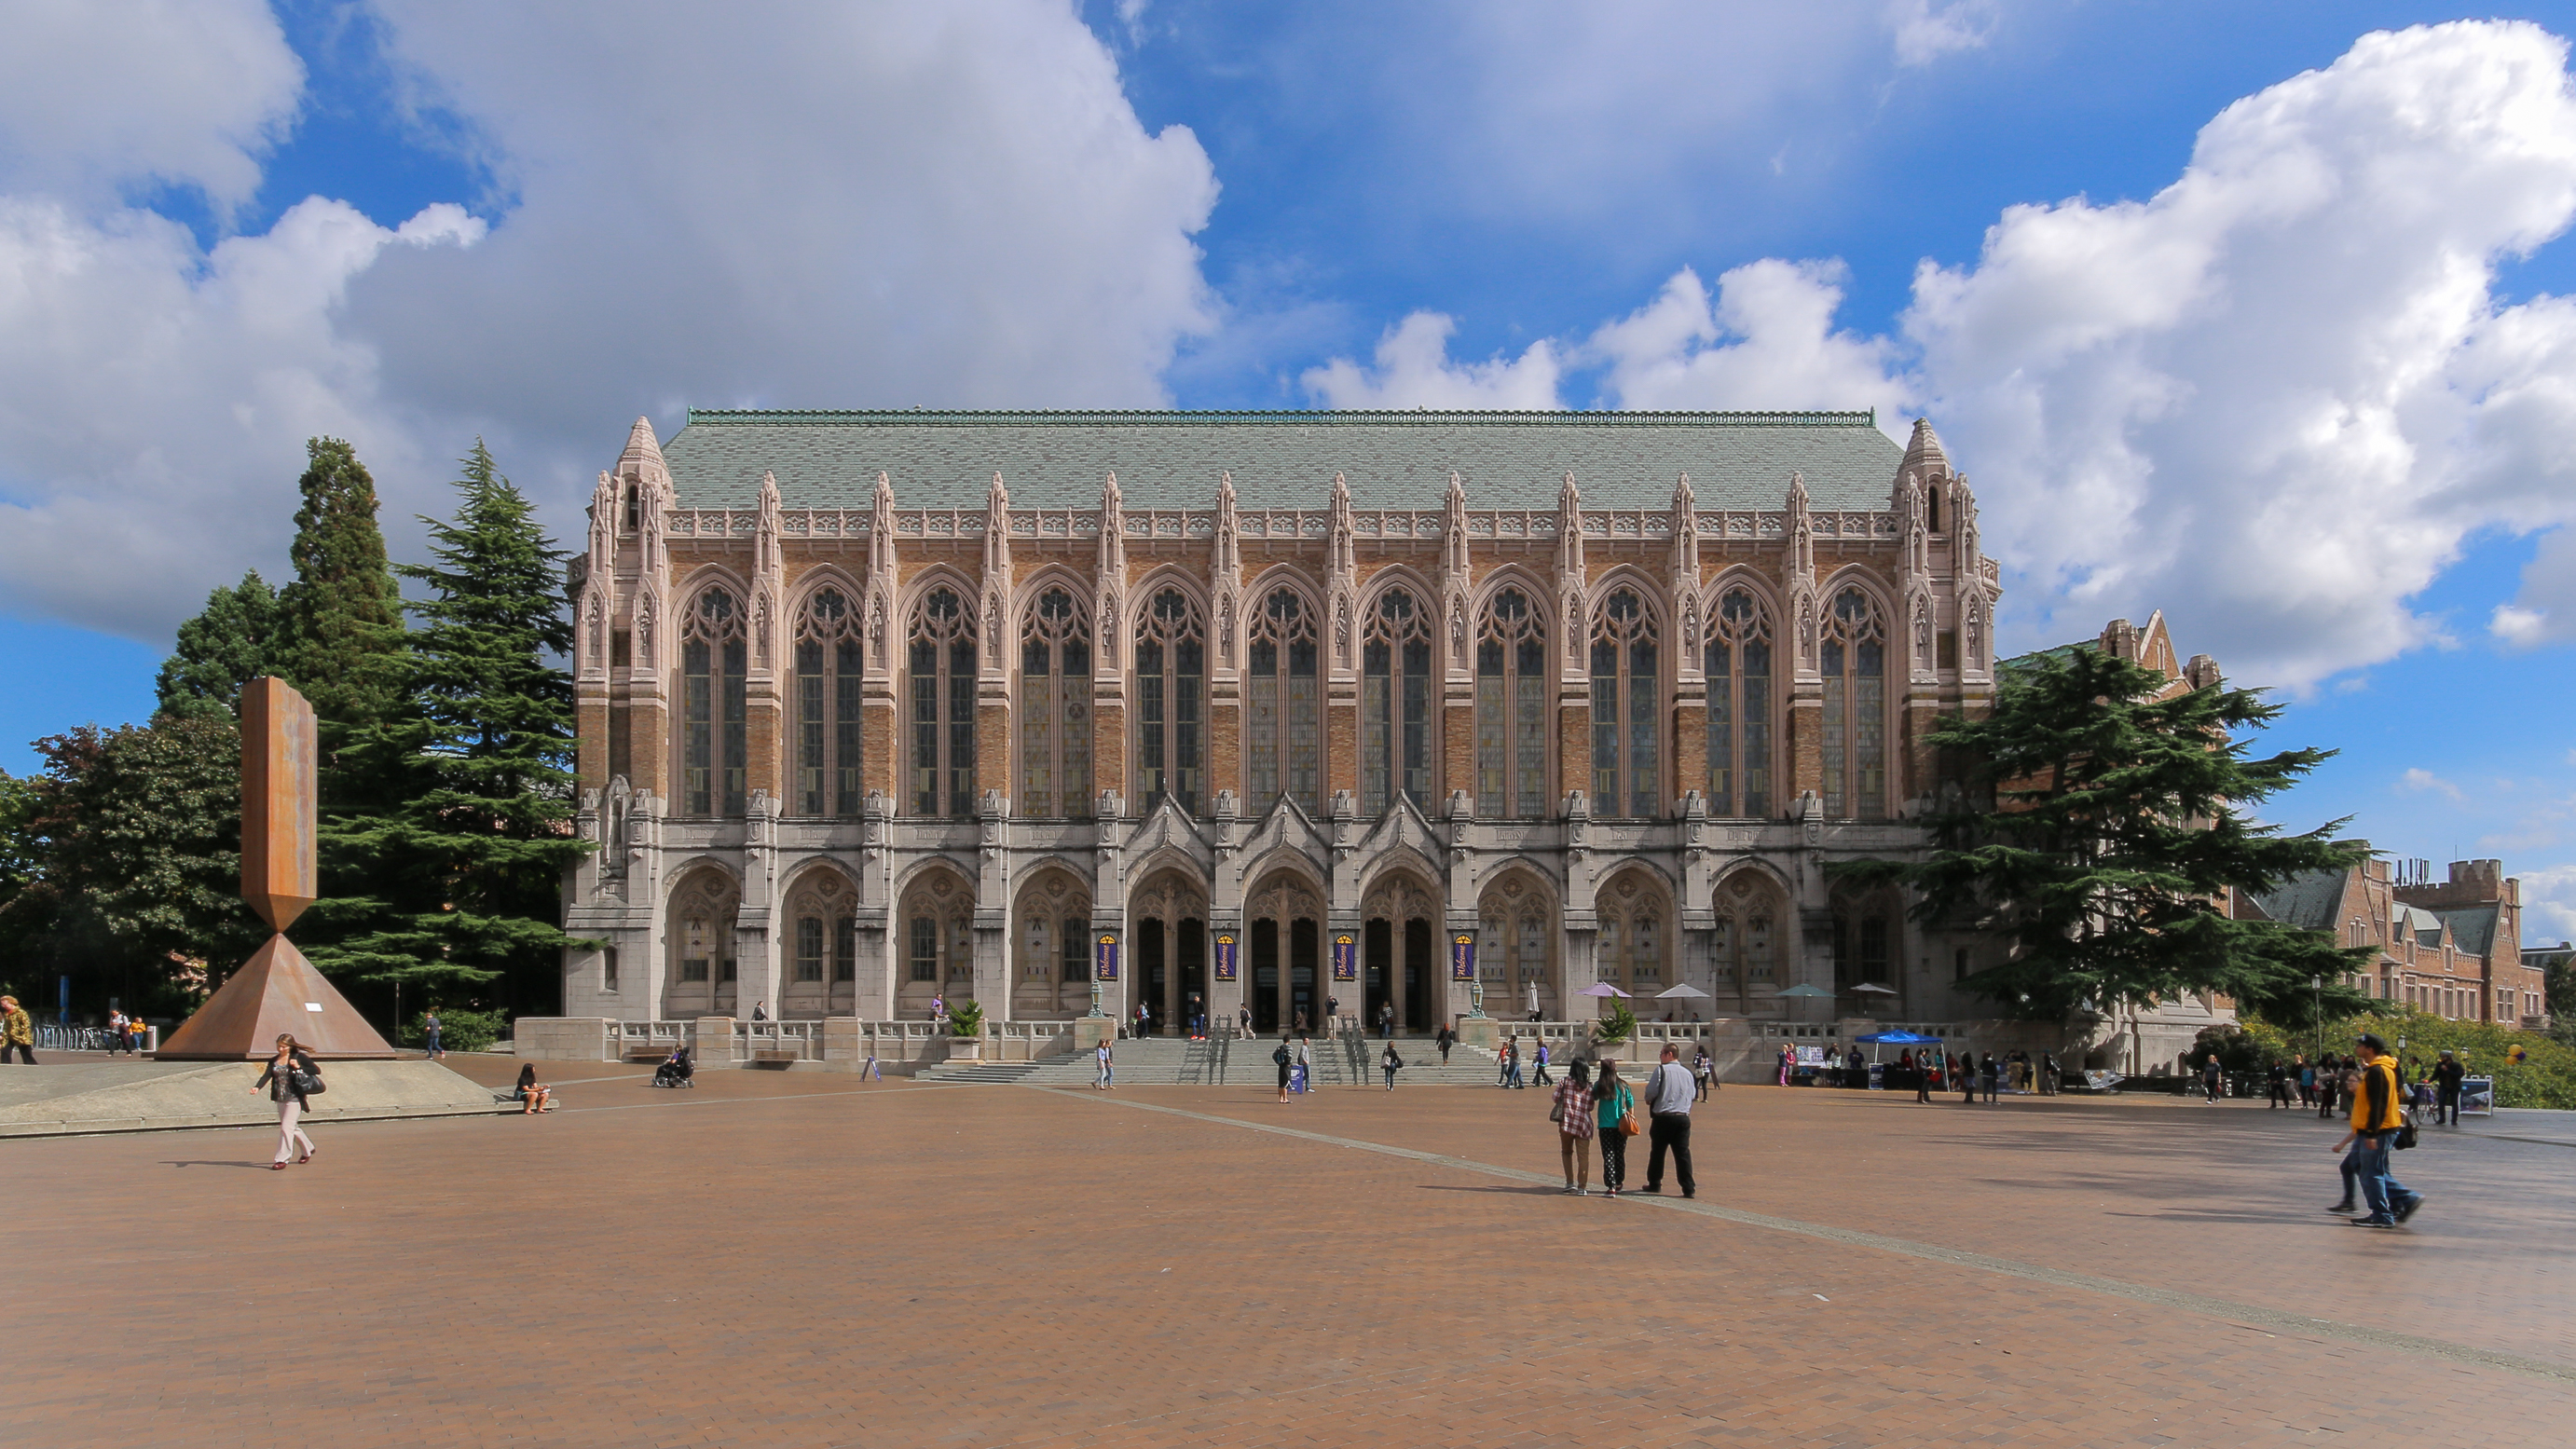 Wikimedia: Suzzallo Library image by Martin Kraft